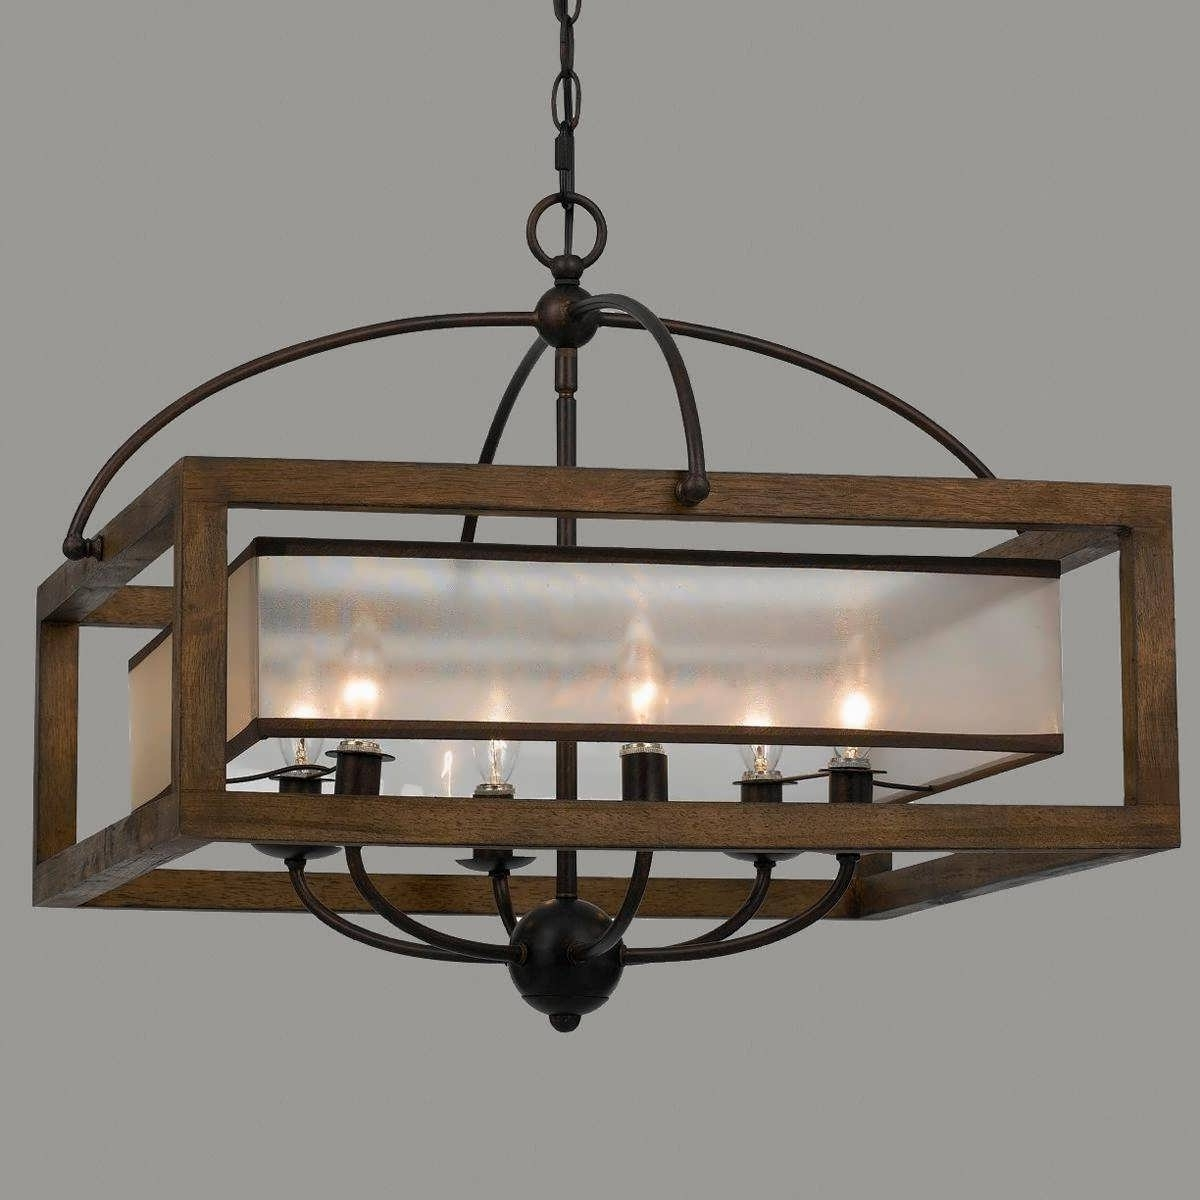 Small Rustic Chandeliers For Favorite Chandelier : Extra Large Rustic Chandeliers Iron Chandelier Wood And (View 15 of 20)